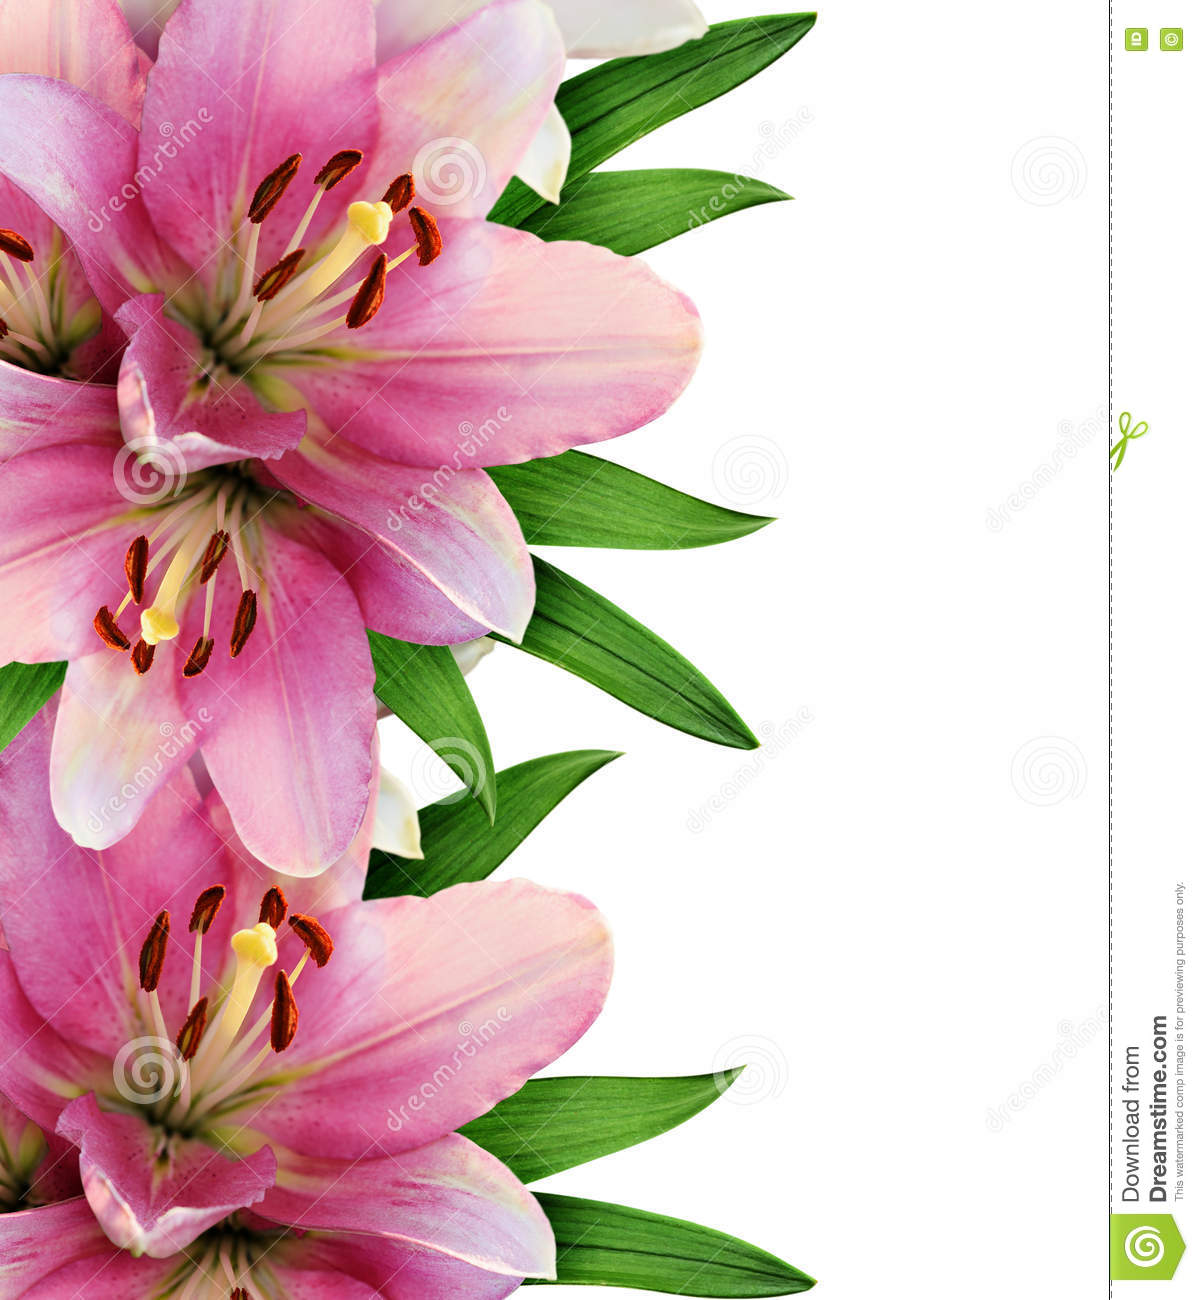 Pink Lily Flowers Border Stock Photo Image Of Round 77622172